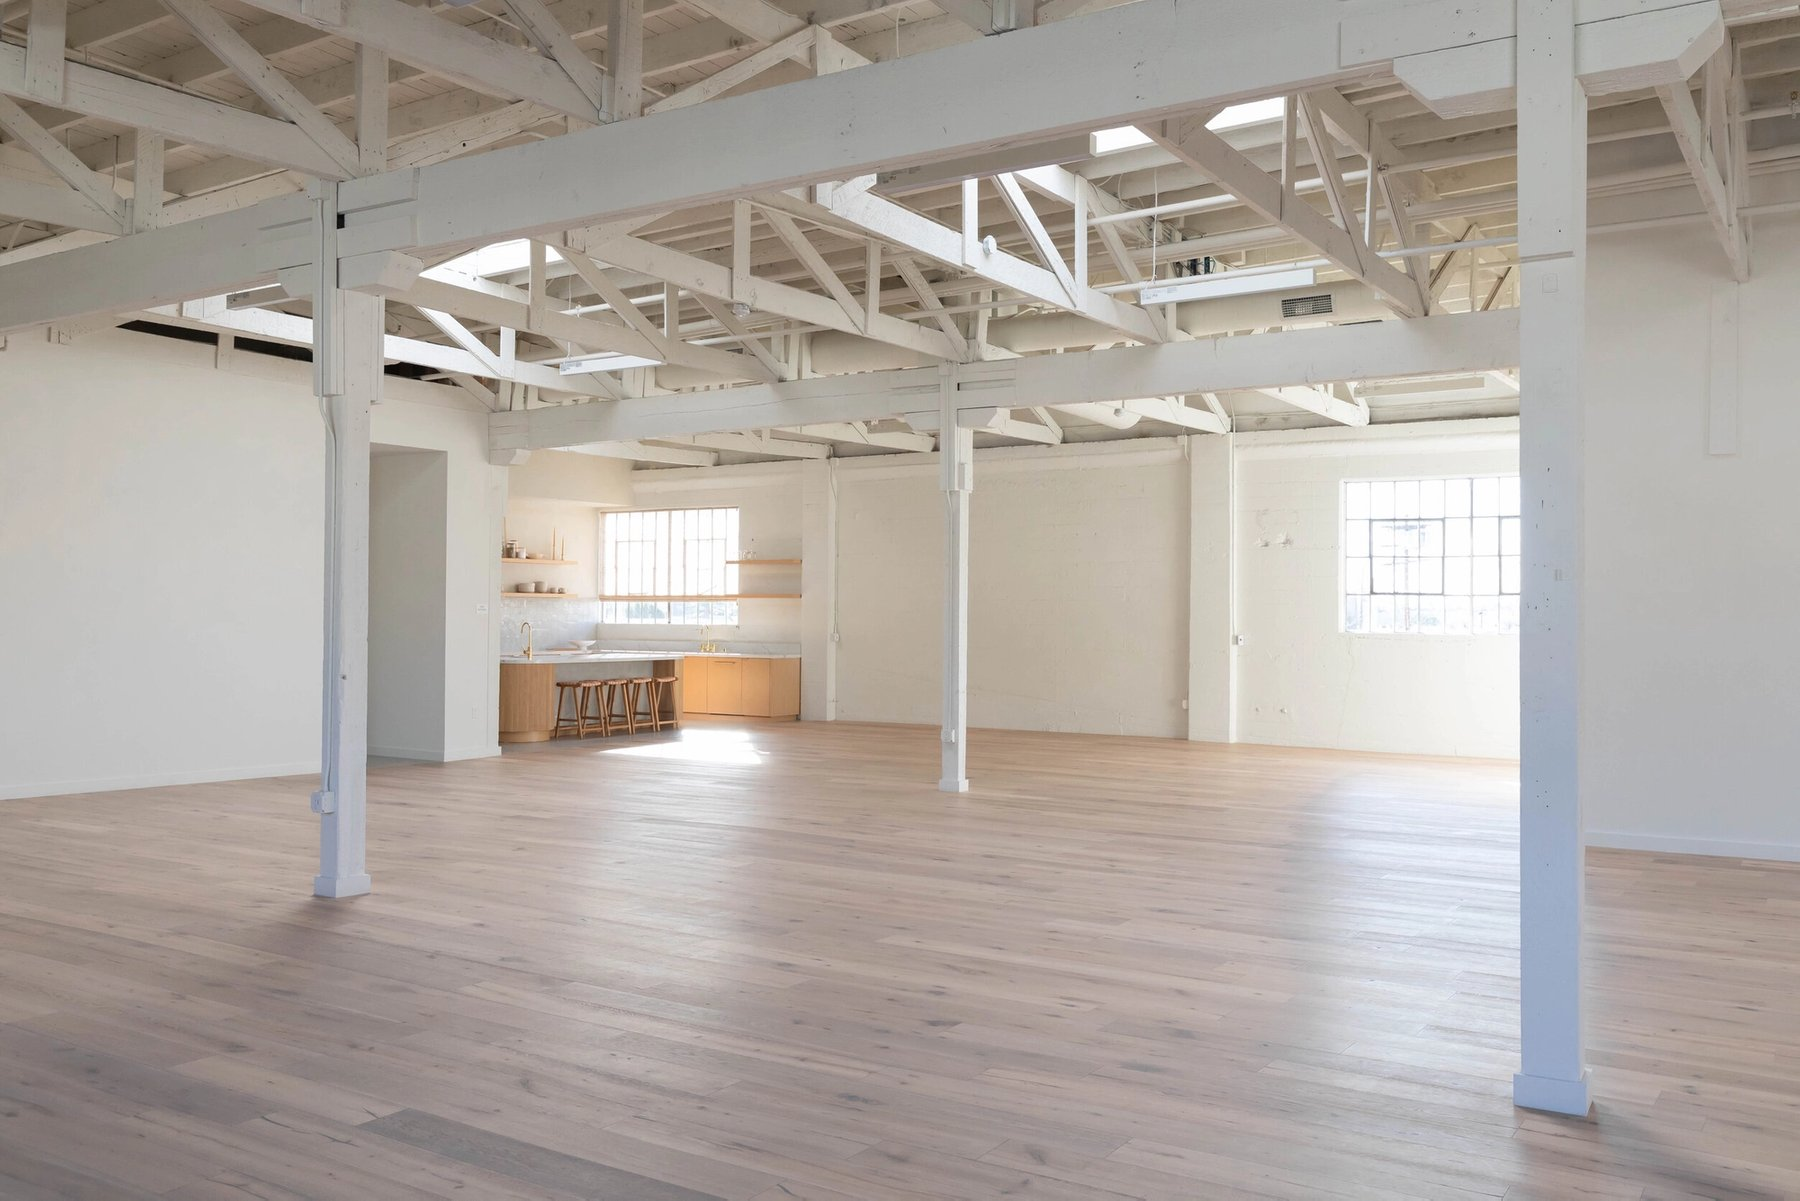 White oak floors and exposed wood structure